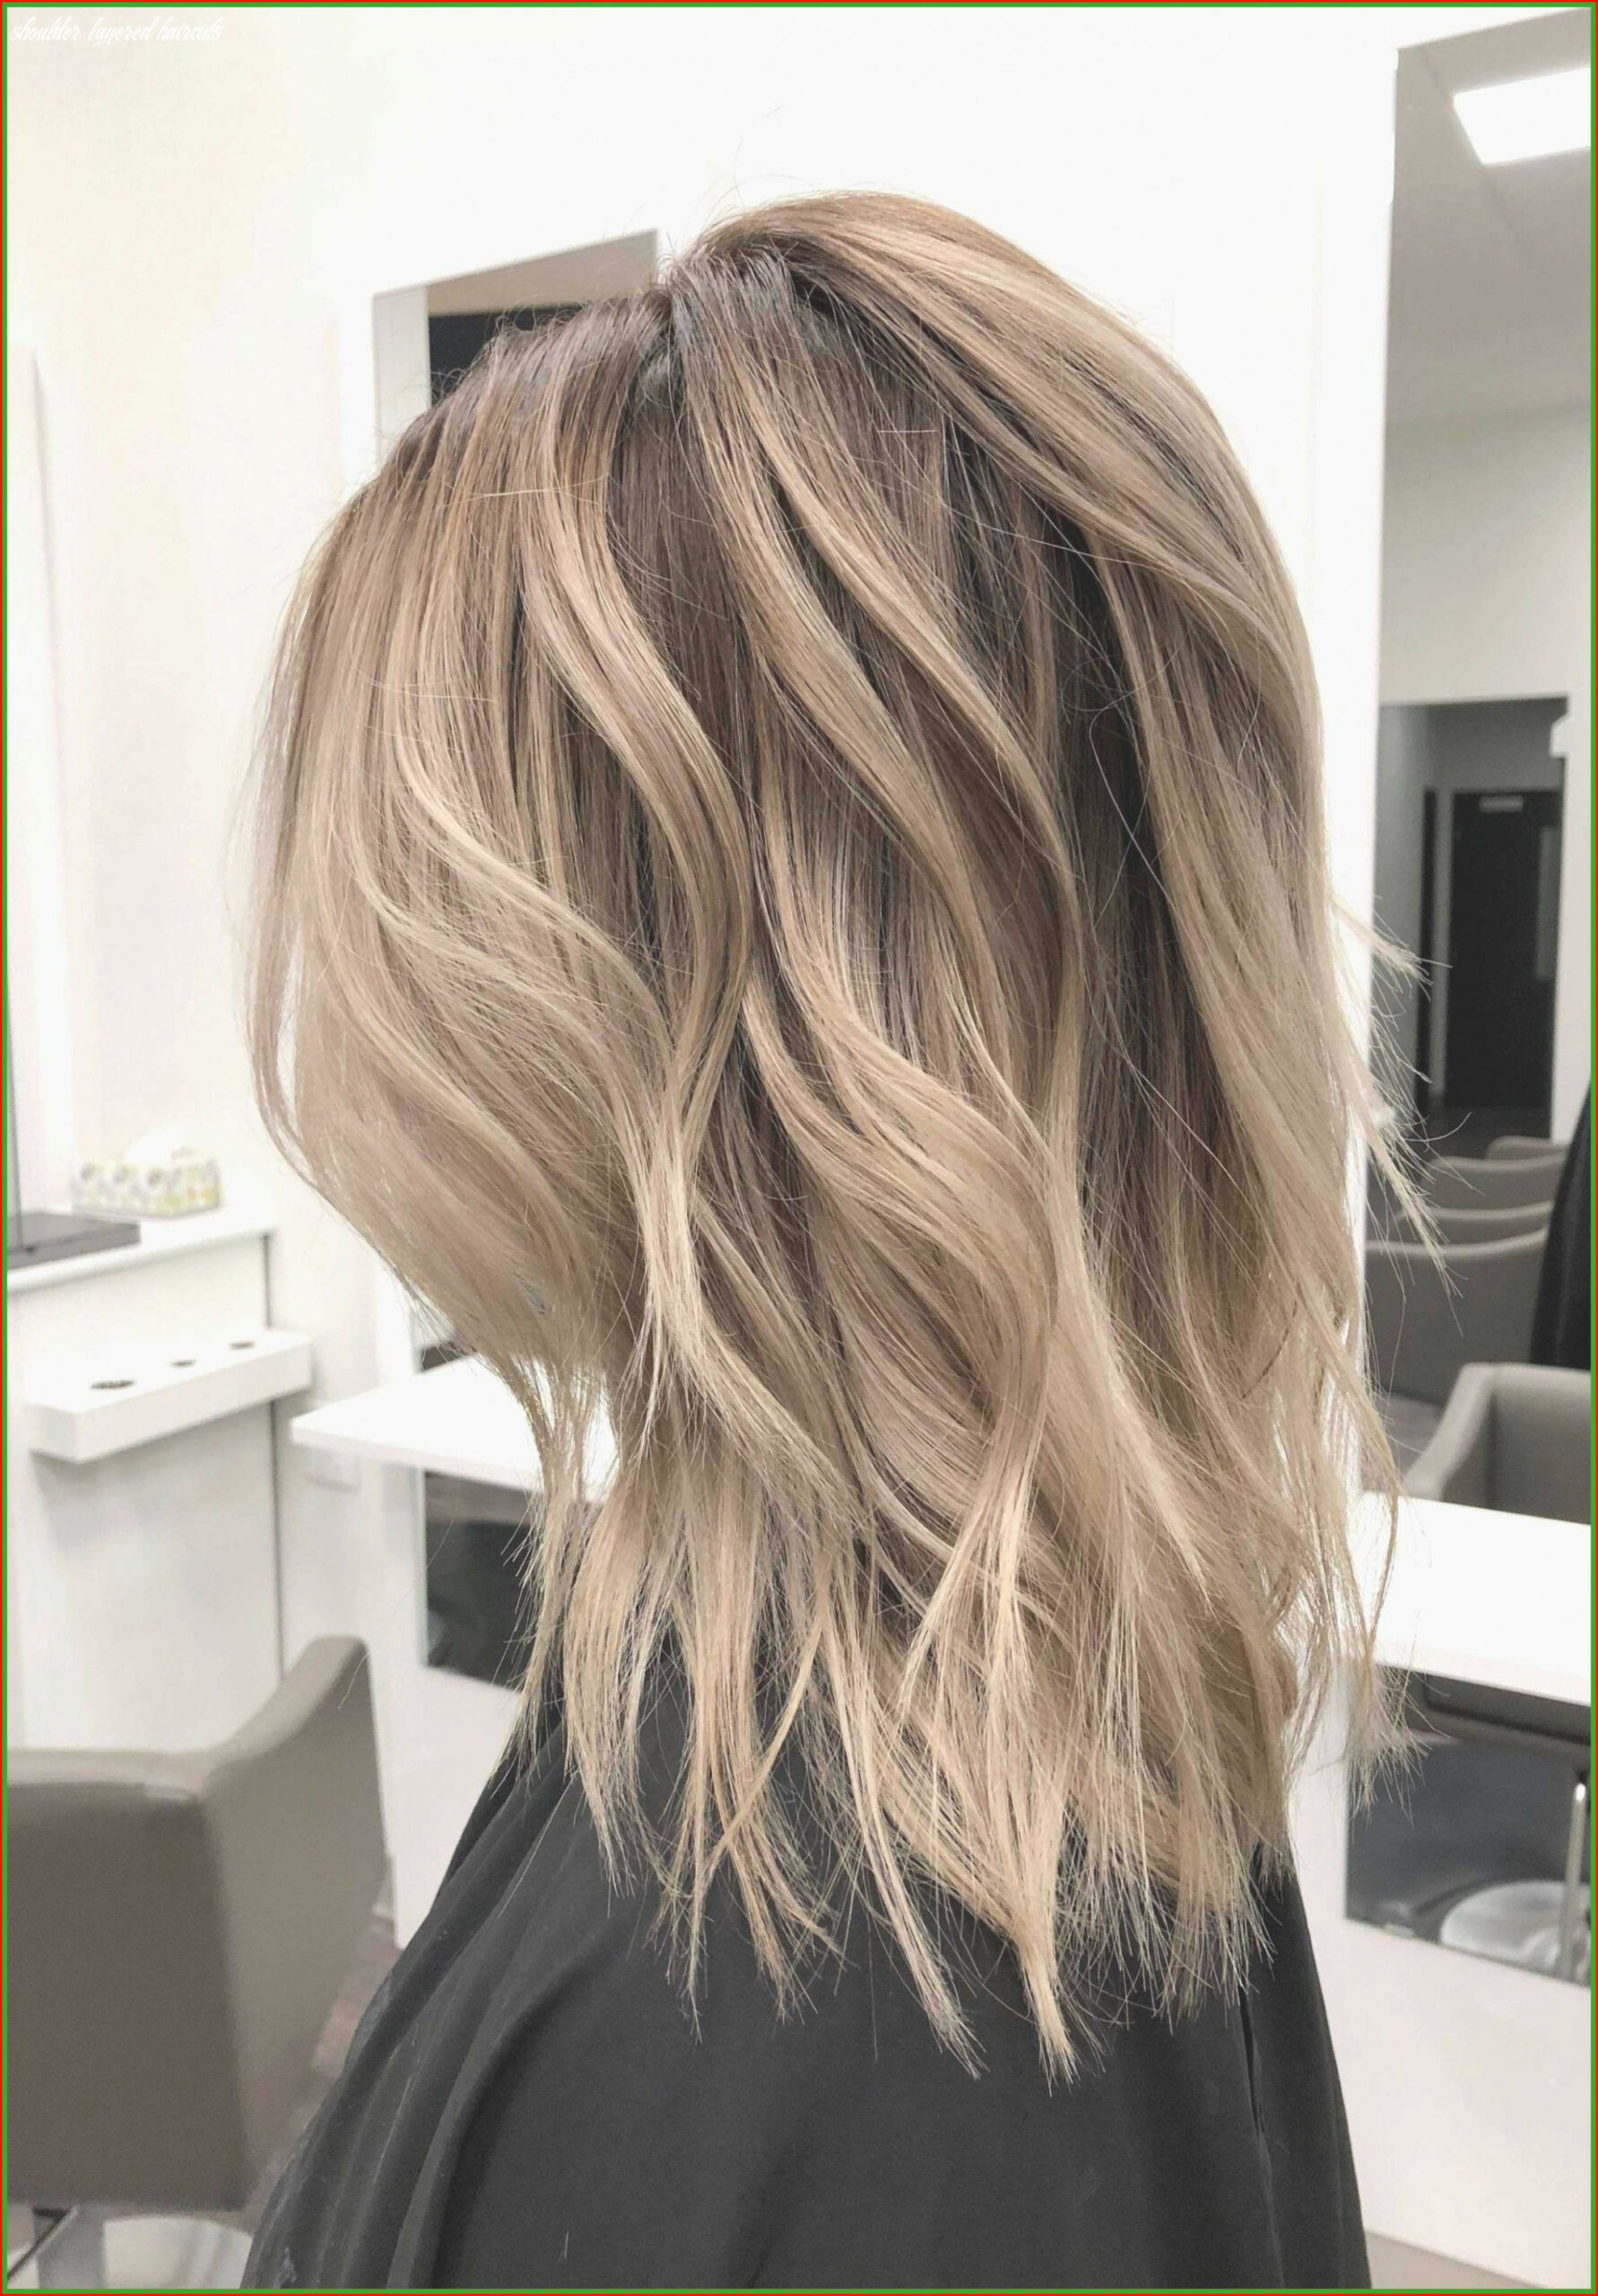 Inspiring Shoulder Length Layered Haircuts for Thick Hair Photos ...